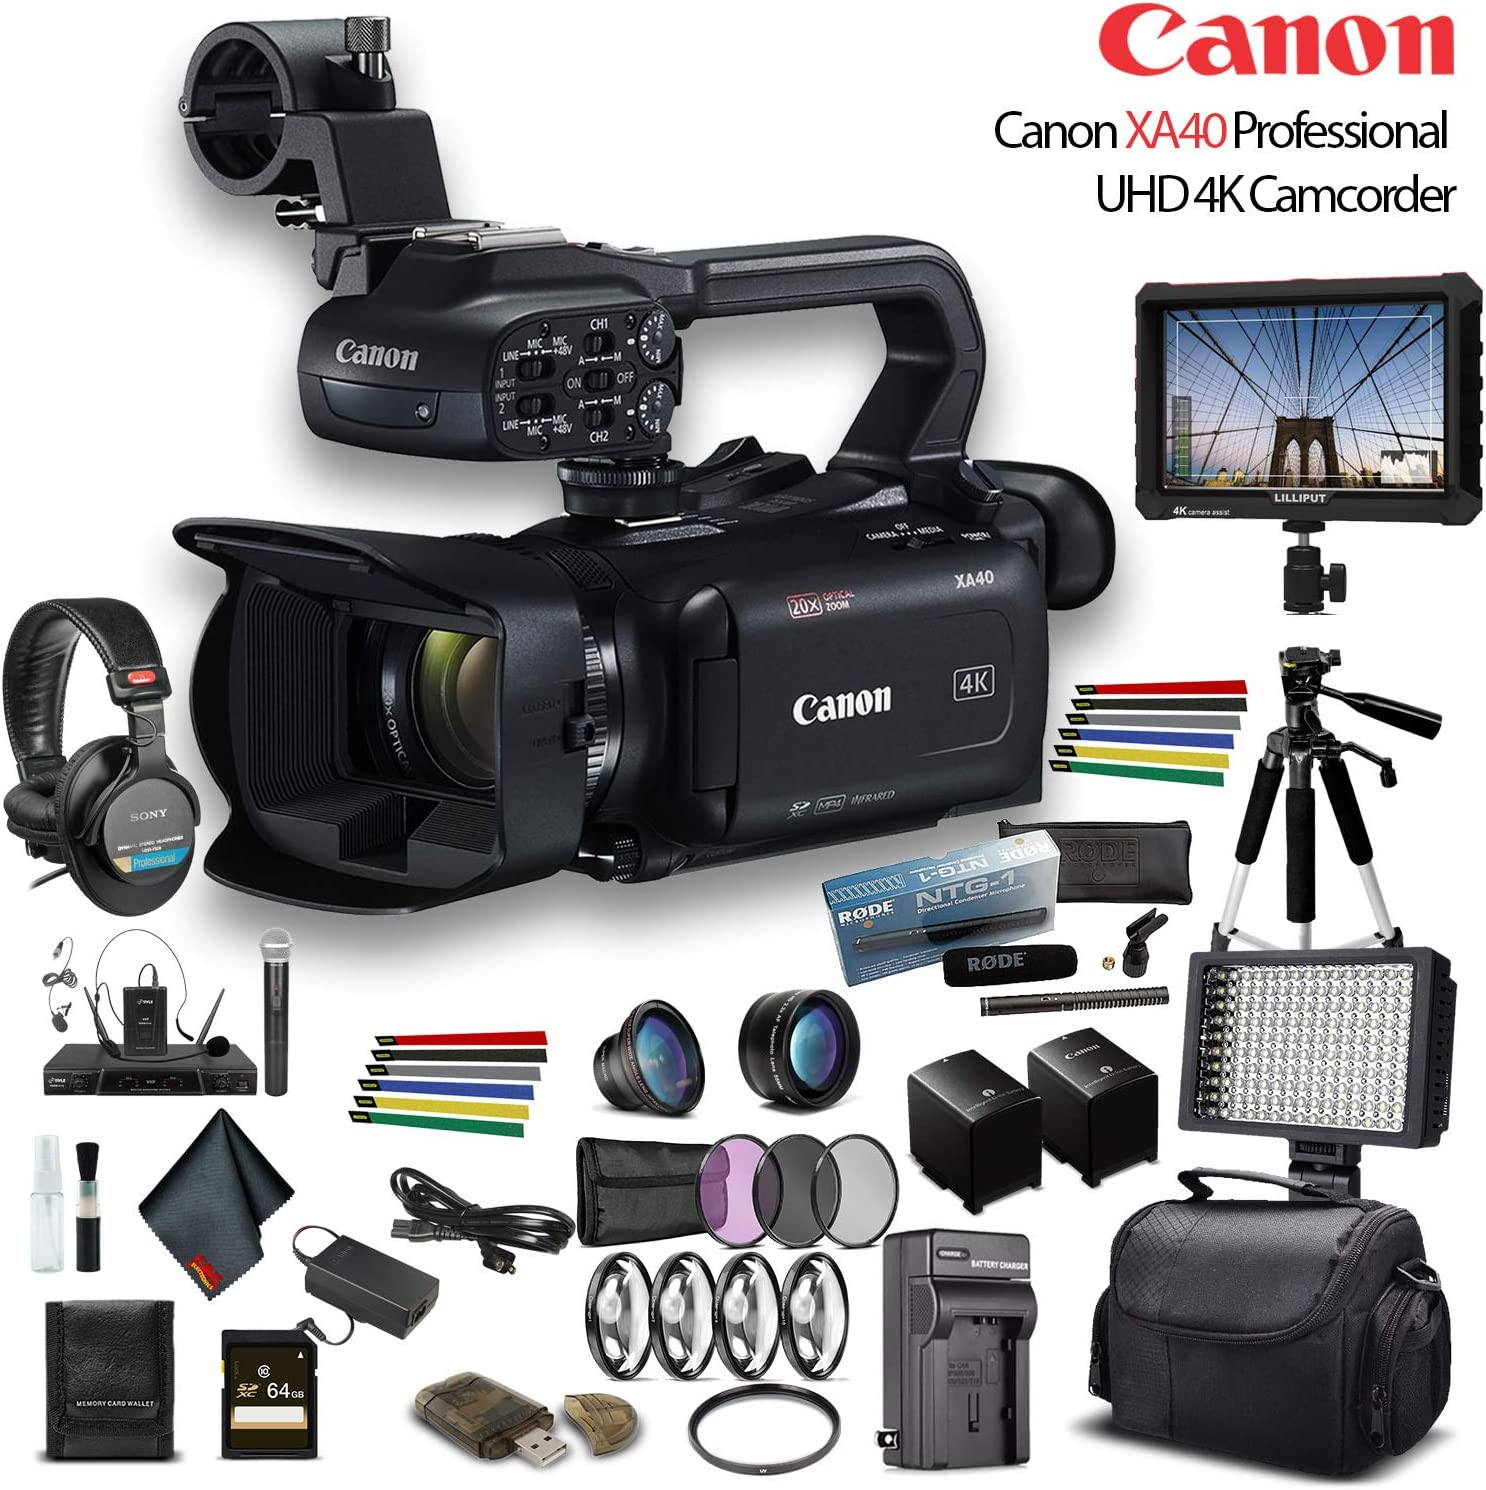 Filter Kit Canon XA55 Professional UHD 4K Camcorder LED Light 4K Monitor Sony Mic and More Advanced W//Mic Bundle 64GB Memory Card Sony Headphones 3668C002 W// 2 Extra Battery Soft Padded Bag